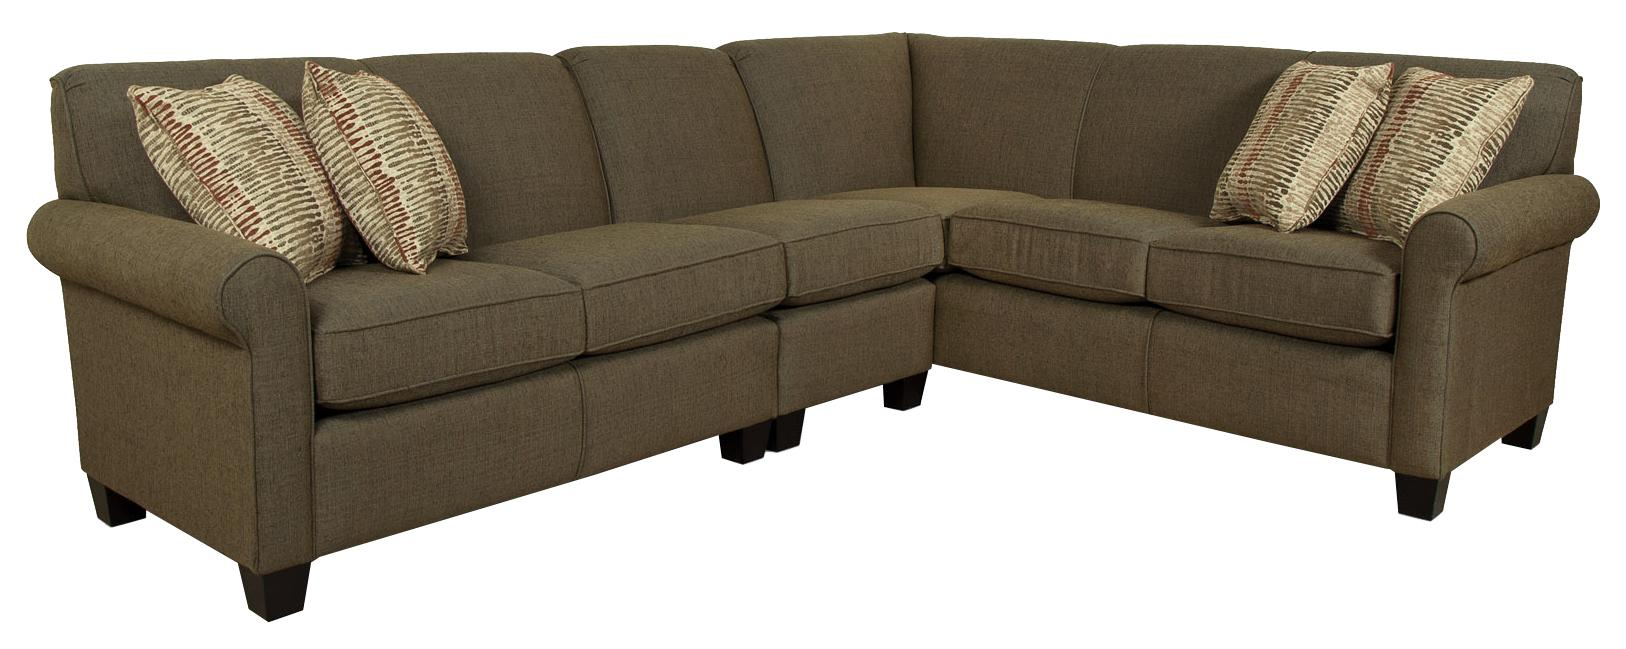 England Angie  Sectional Sofa - Item Number: 4630-28+39+63